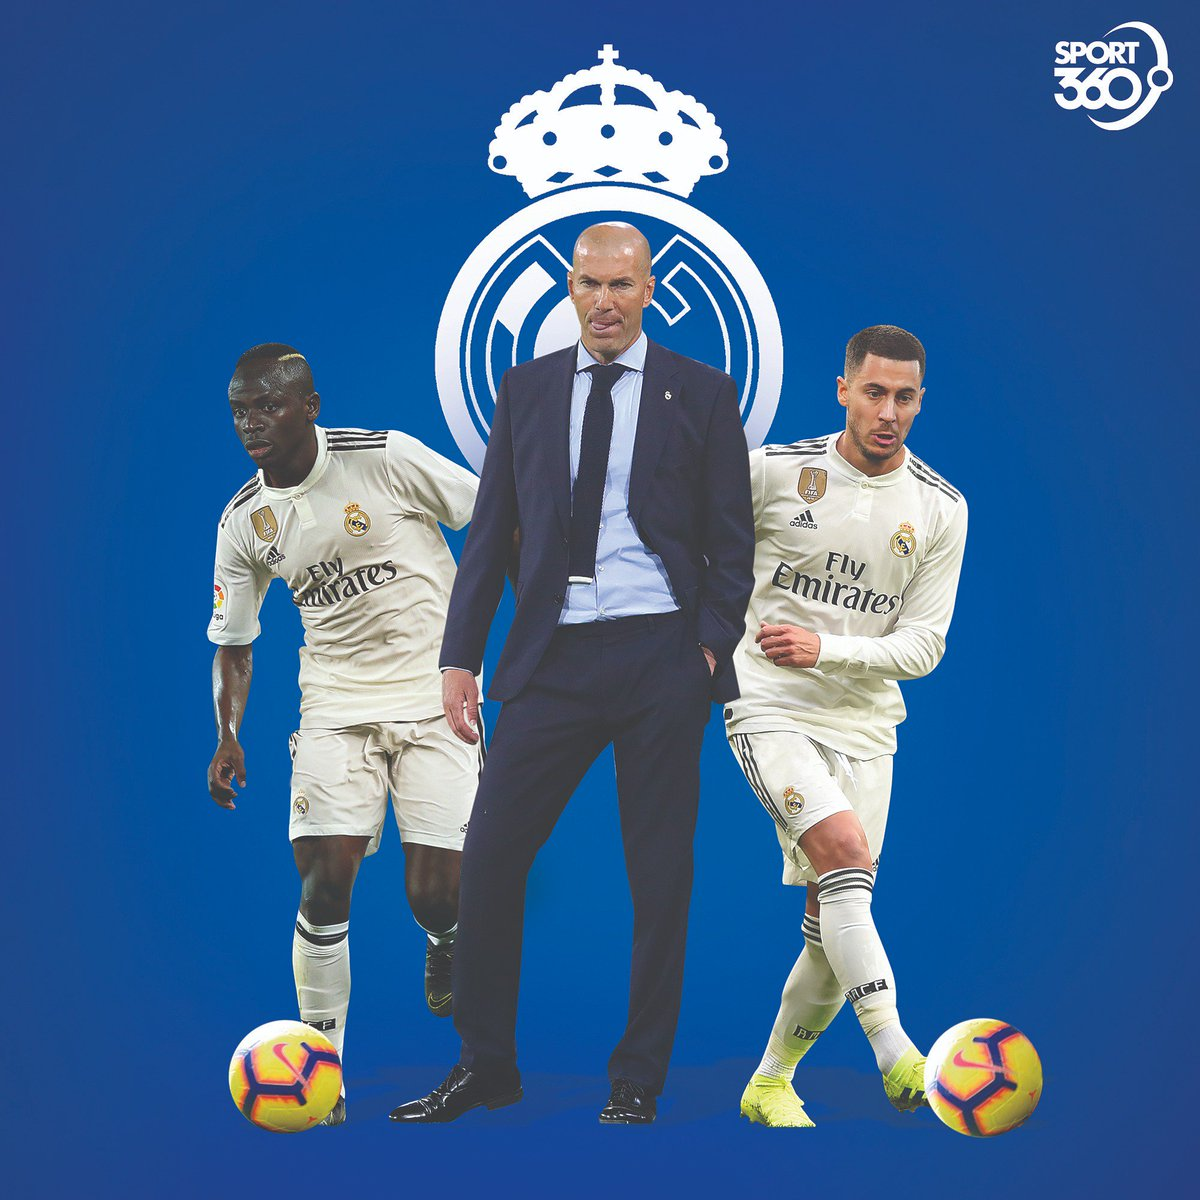 You're #Zidane, and you need to pick just one of them to join #RealMadrid. Which one will you go for? 🤔  #Mane  #Hazard